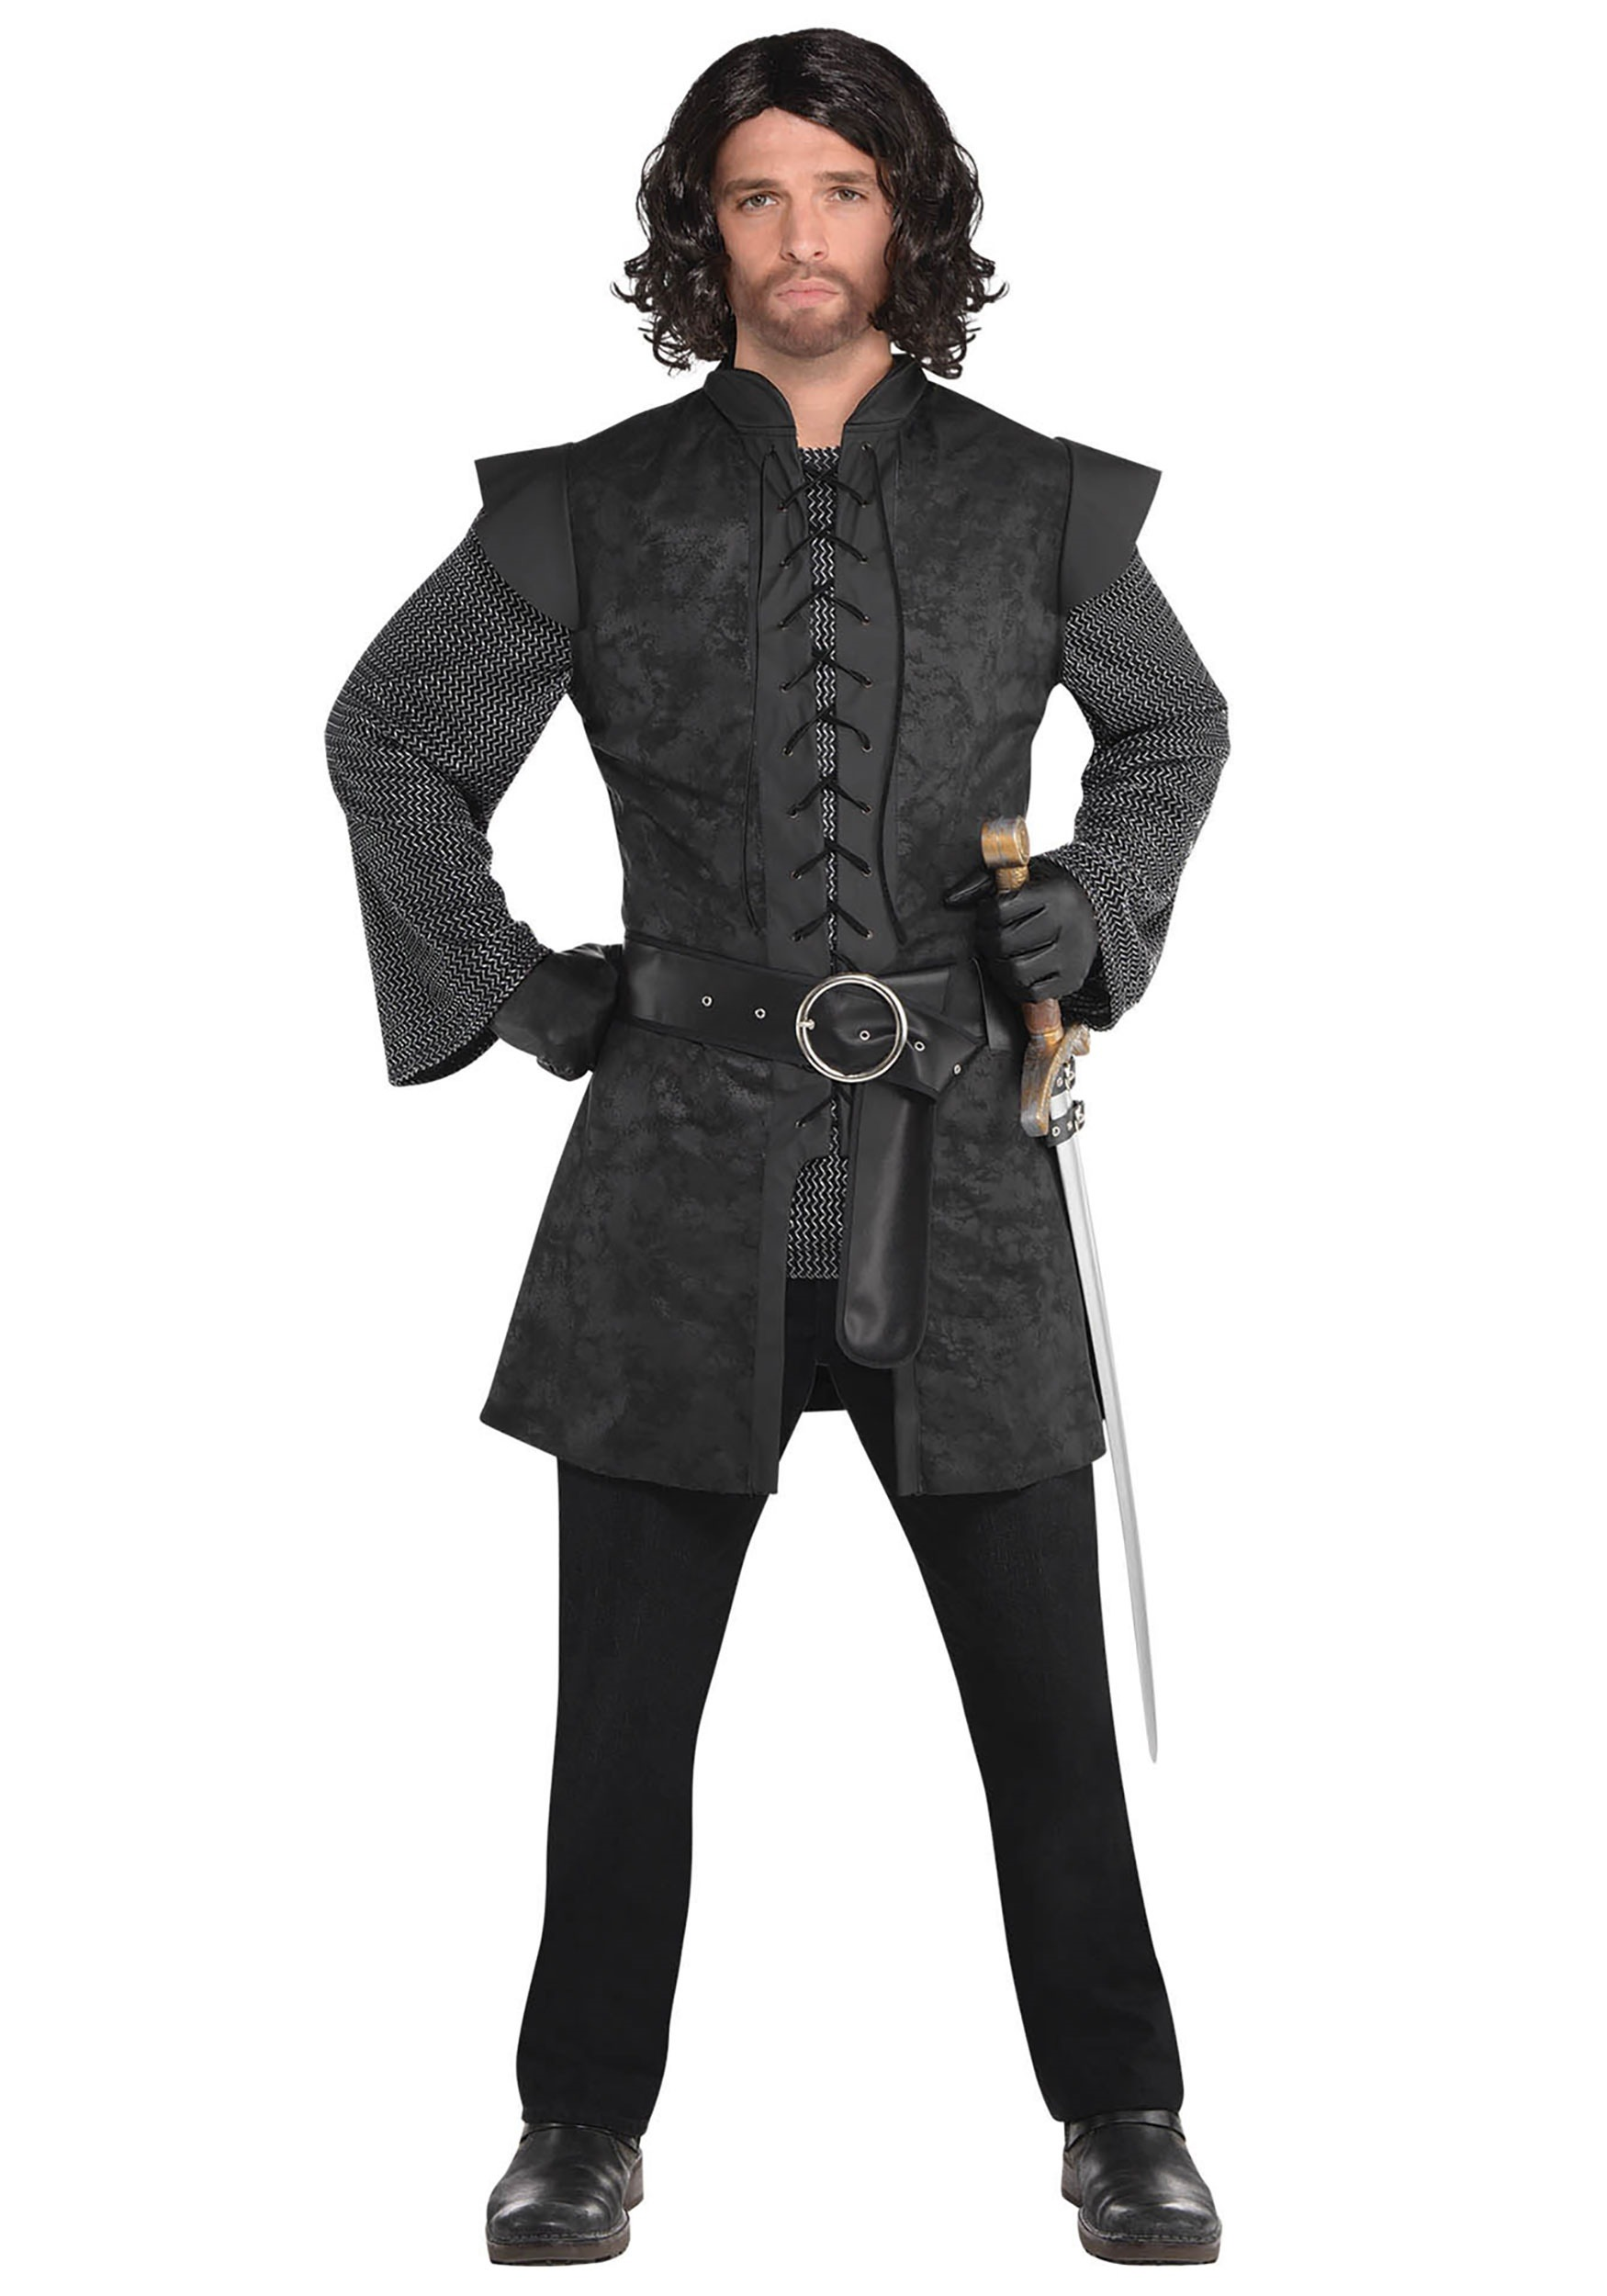 Warrior_Black_Tunic_Men's_Fancy_Dress_Costume